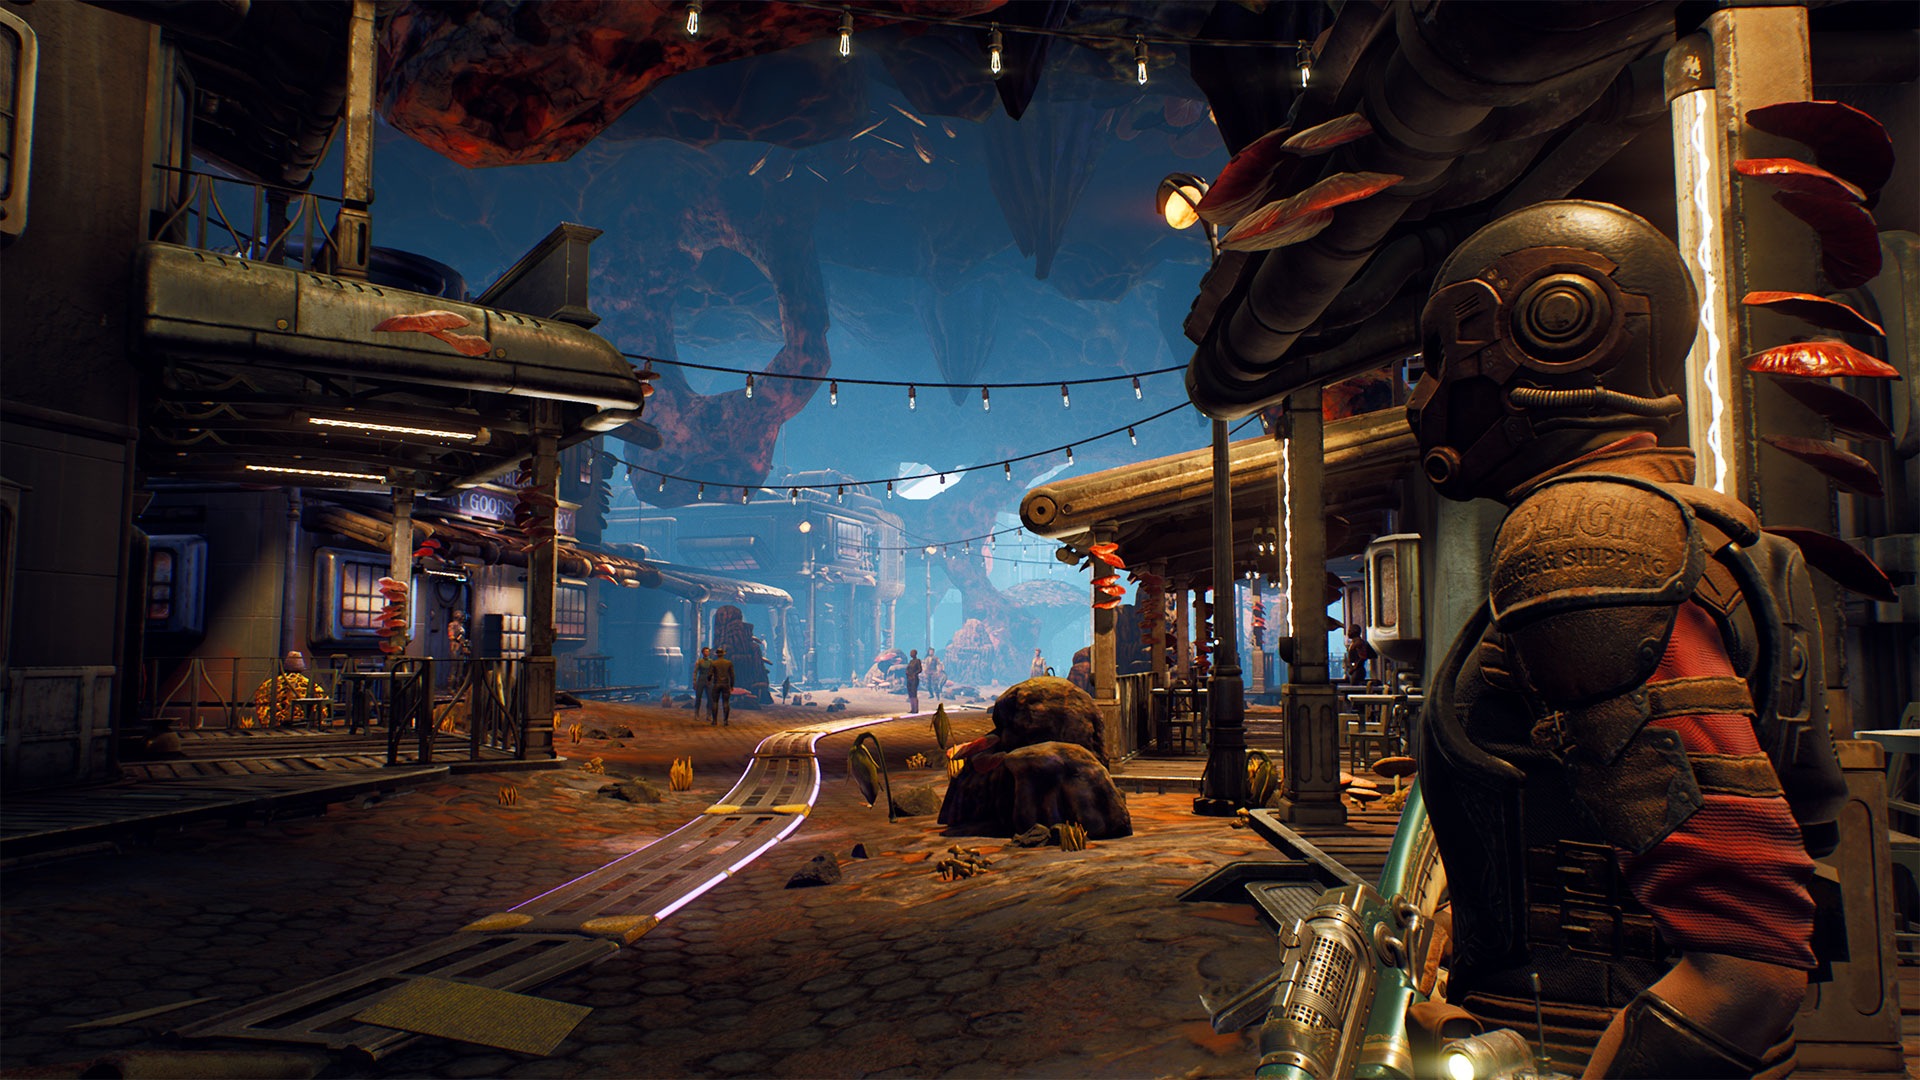 Blending comedy with capitalism in The Outer Worlds